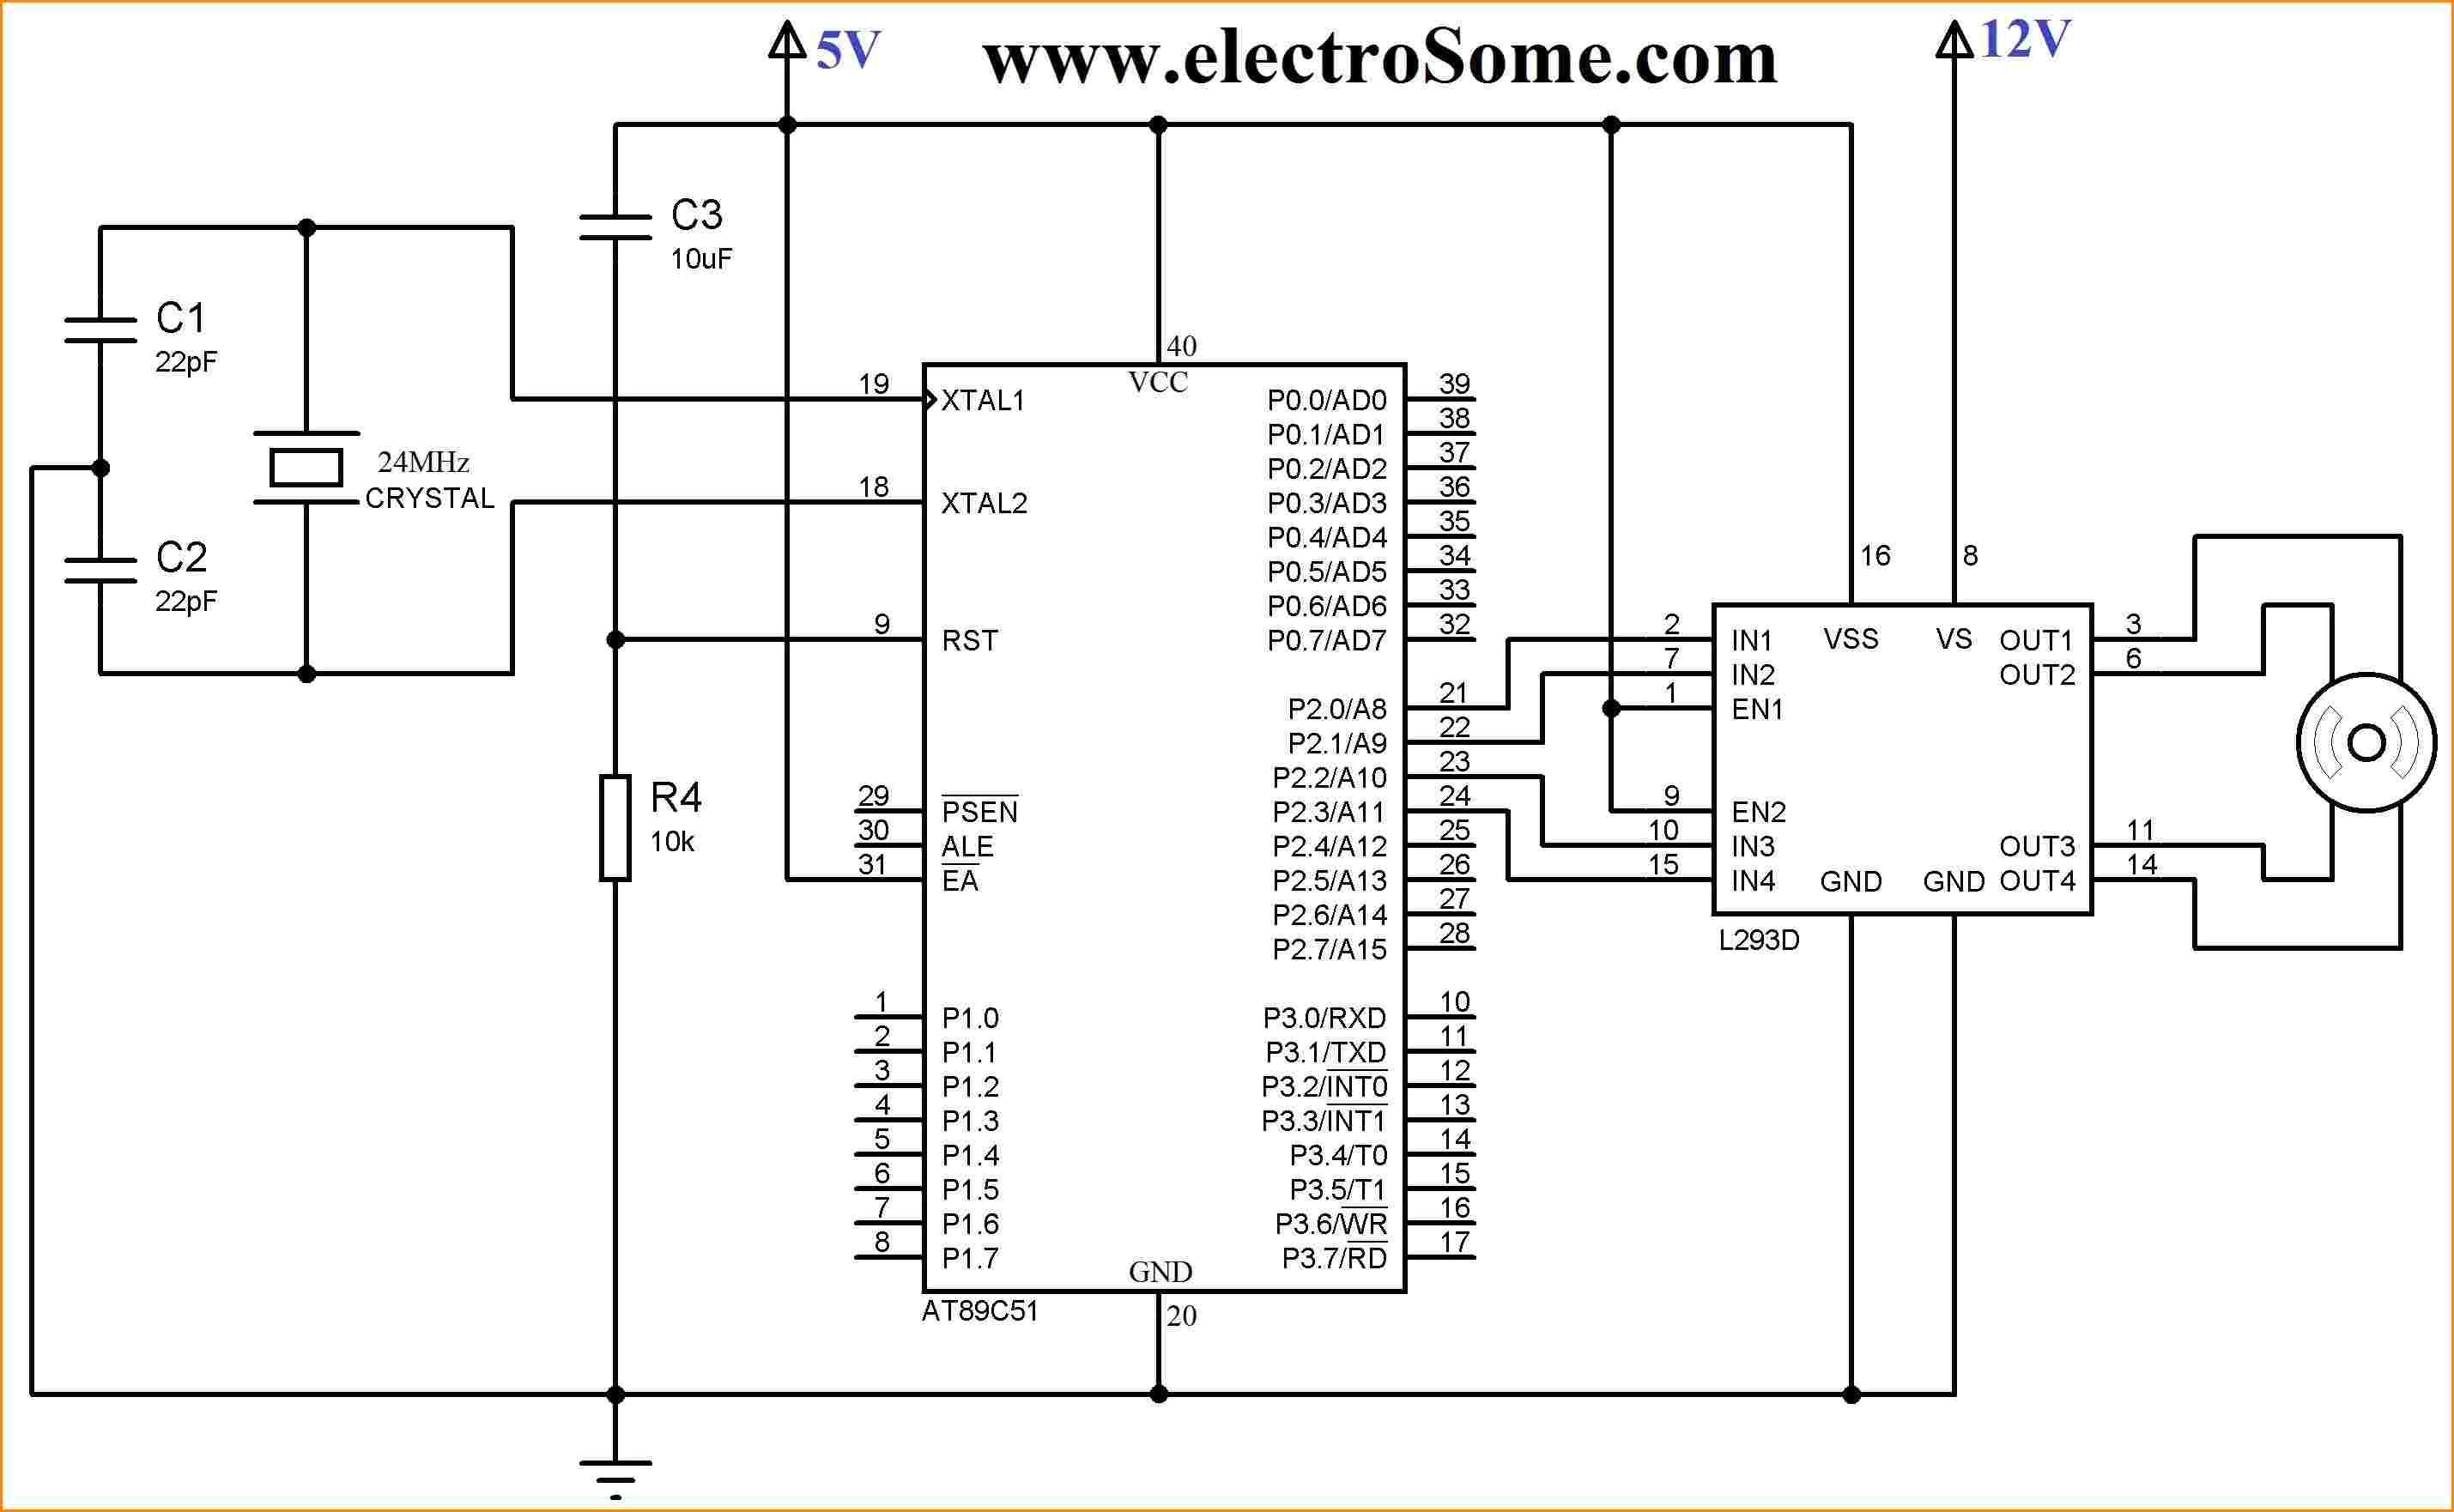 11 Bunker Hill Security Camera Wiring Diagram Worker